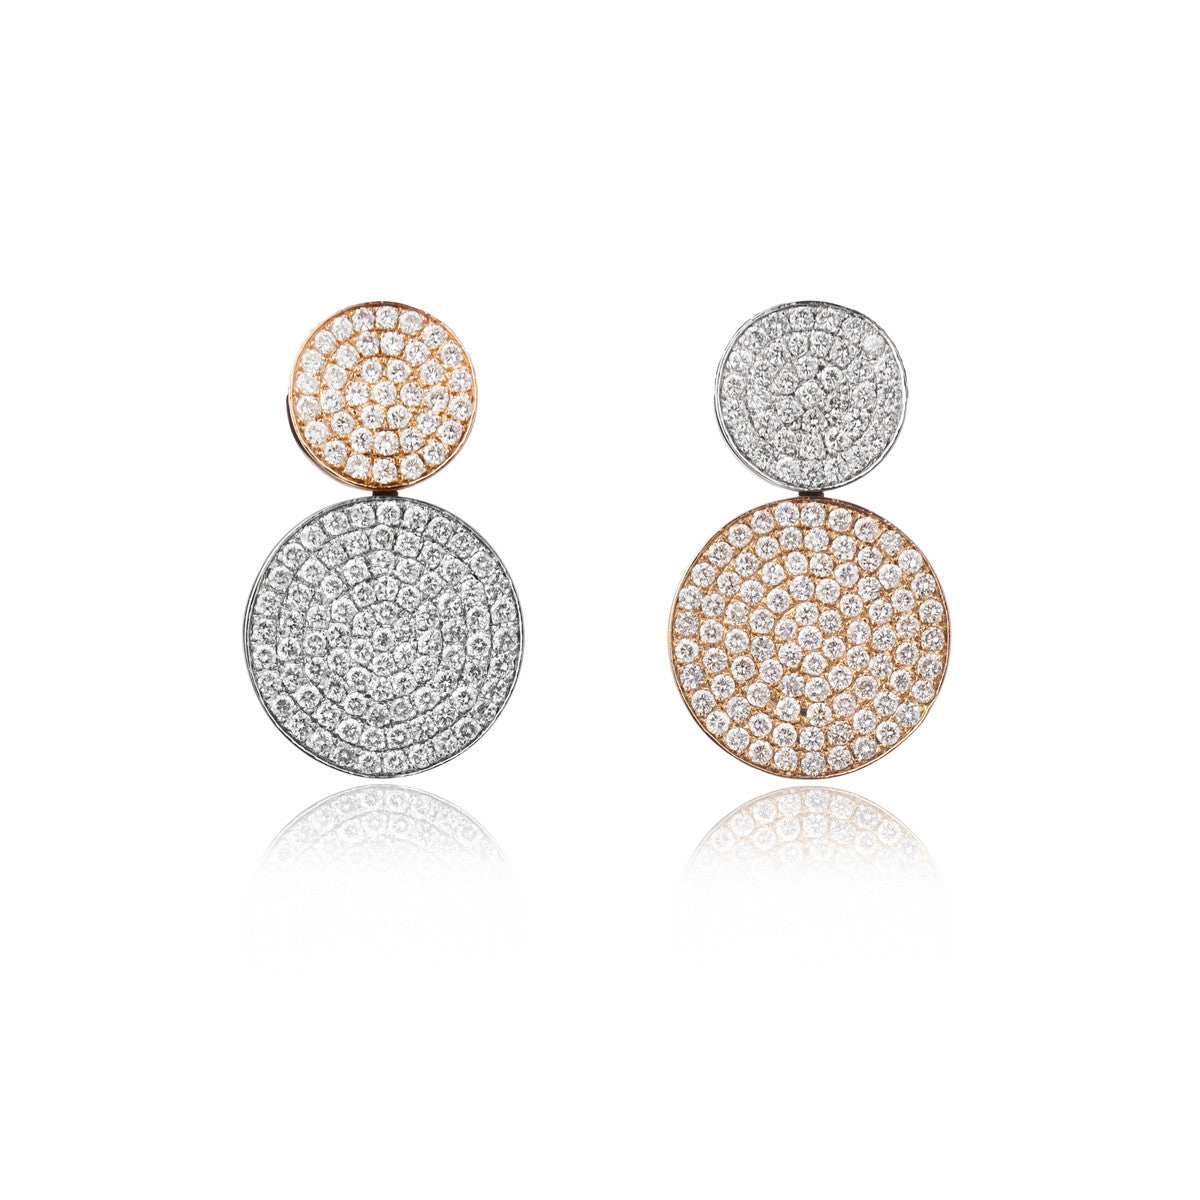 Small Round on Round Earrings